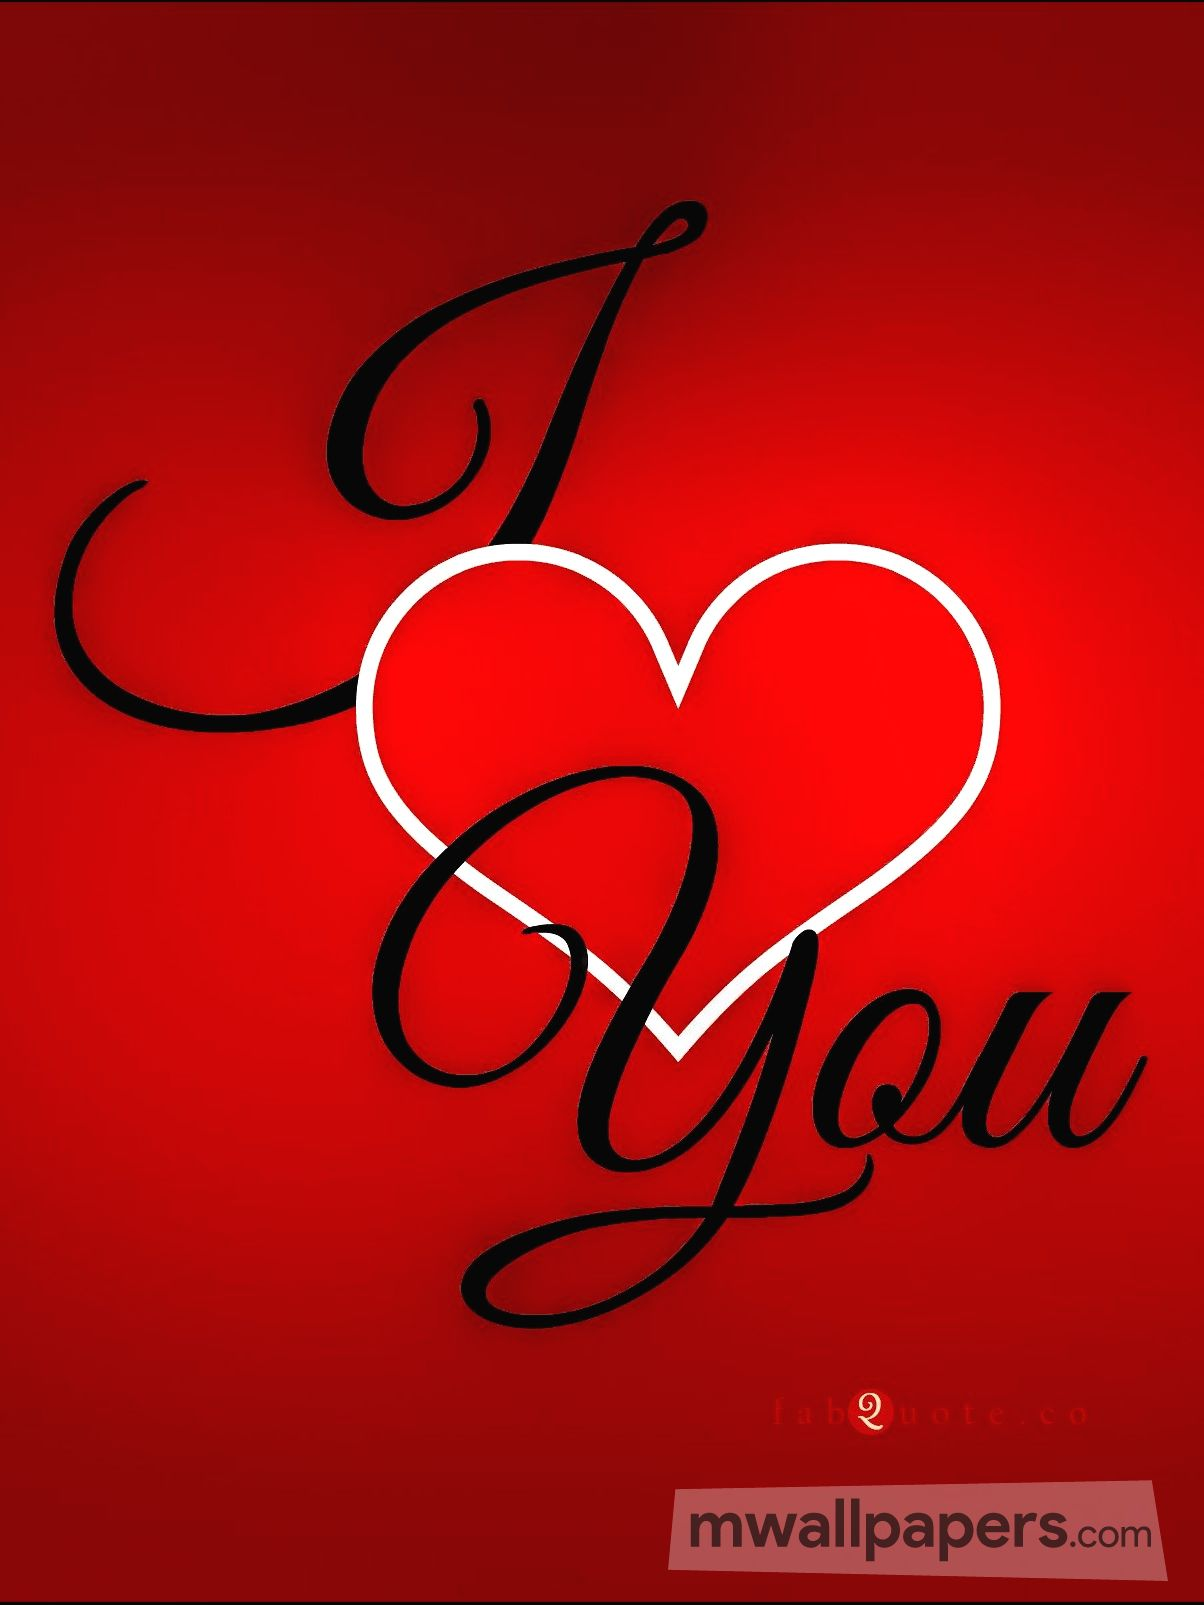 Love Images & Wallpapers (92) - love, heart, red, valentine